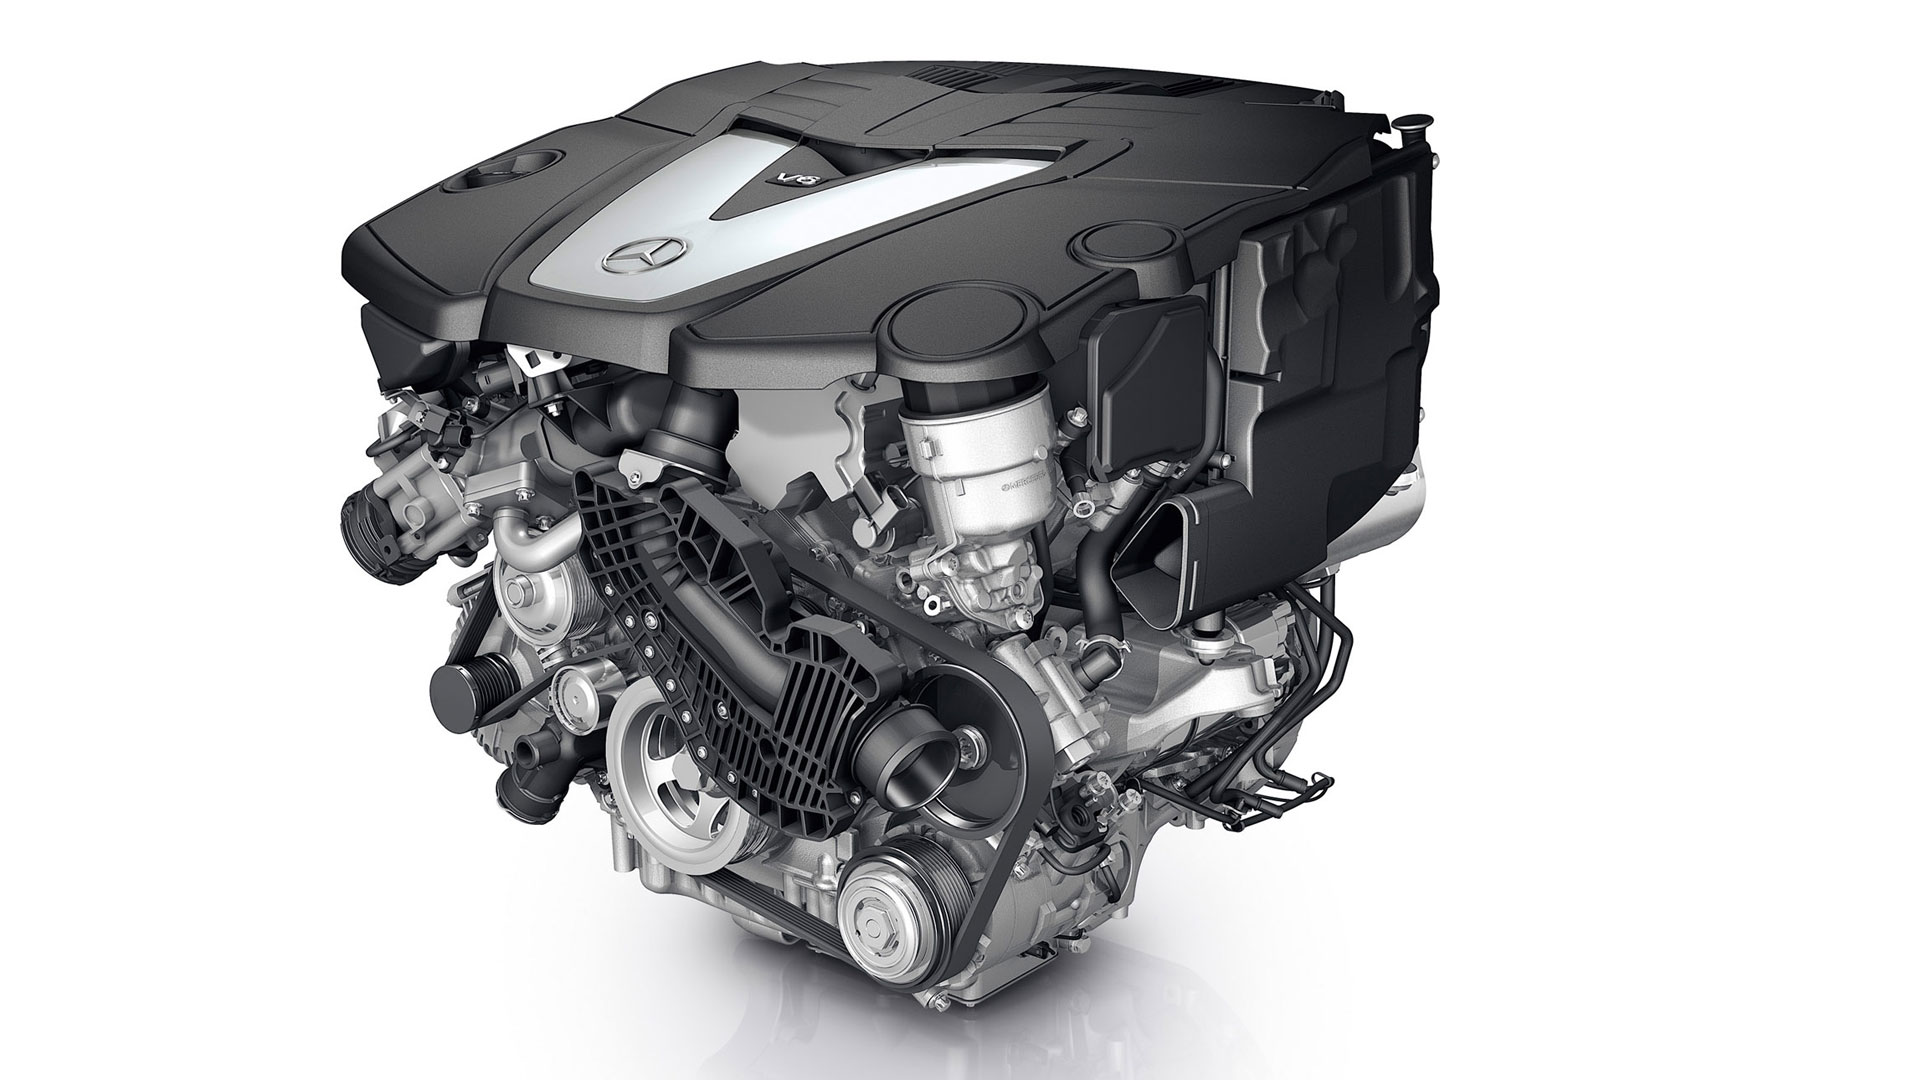 Mercedes benz s350 engine closeup wallpaper for Mercedes benz diesel engines